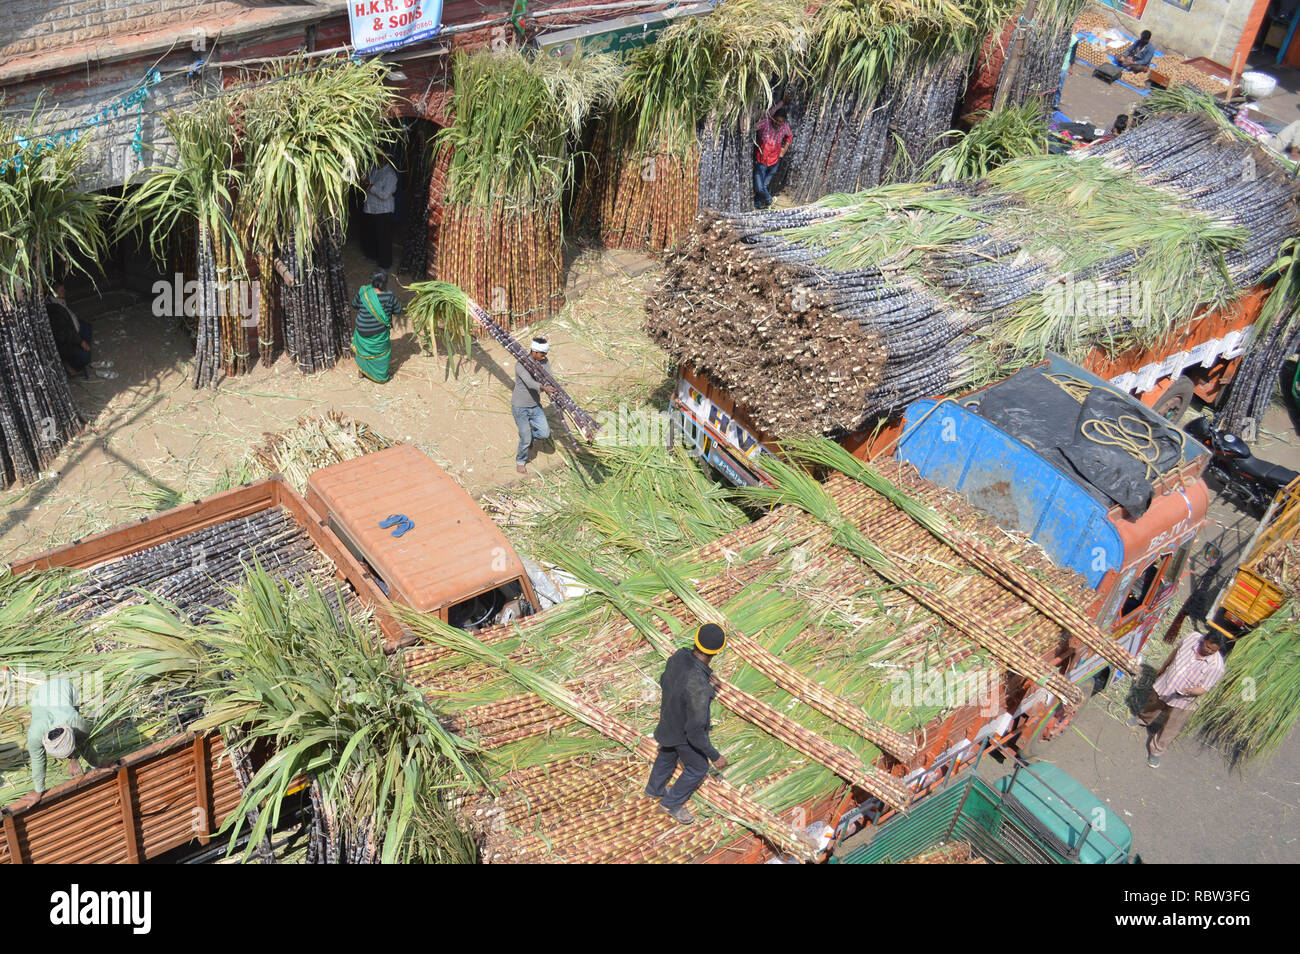 Bangalore, India. 12th Jan, 2019. Bundles of sugarcane are being stocked outside a wholesale market on the eve of Makar Sankranti Festival, in Bangalore, India, Jan. 12, 2019. People exchange pieces of sugarcane to signify sweetness during Makar Sankranti, a Hindu festival which marks the return of the sun to the northern hemisphere. Credit: Stringer/Xinhua/Alamy Live News Stock Photo